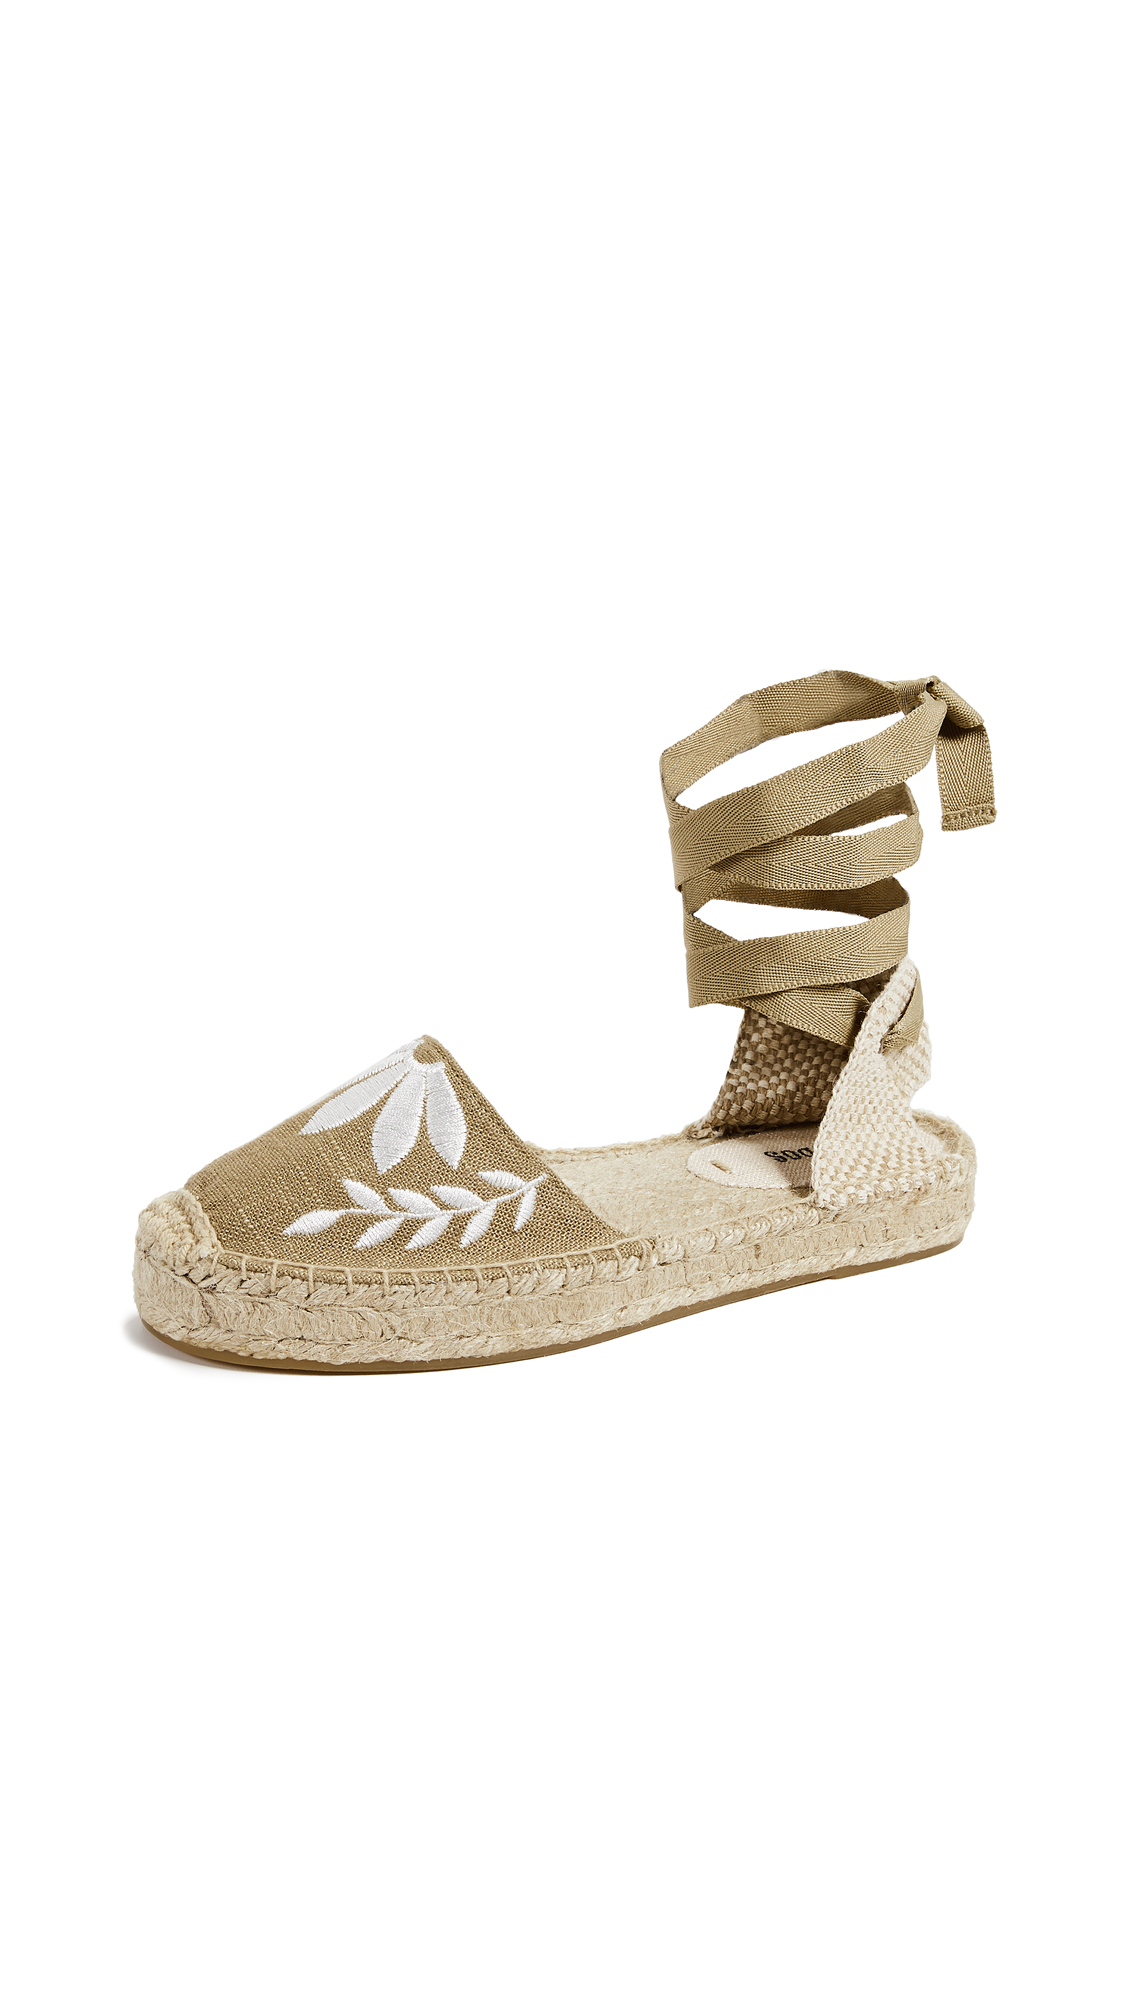 Soludos Embroidered Floral Sandals - Khaki